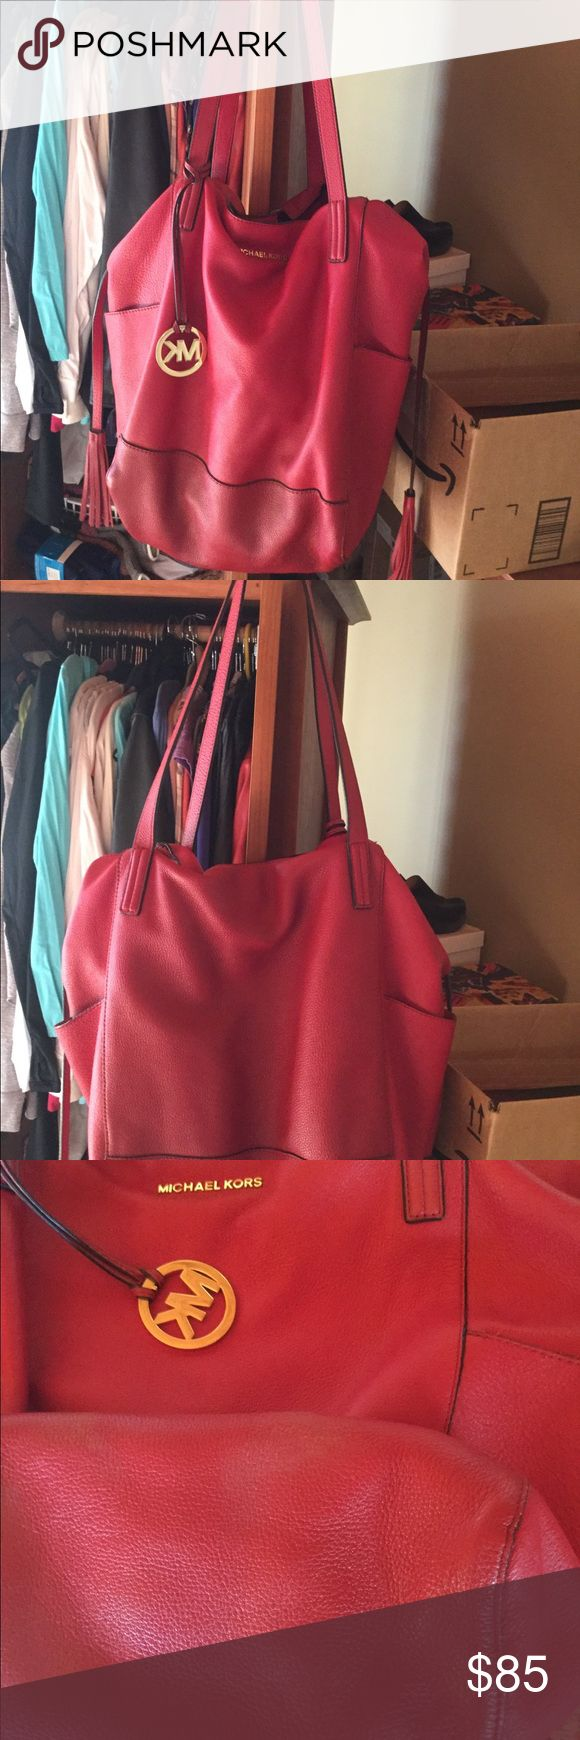 Michael Kors Ashbury Red Handbag Michael Kors Ashbury Large  red handbag. The removable inner pocket has fuzz on it from being washed. On the bottom of handbag has a couple small marks. See in pic. Other than that a beautiful handbag Michael Kors Bags Shoulder Bags